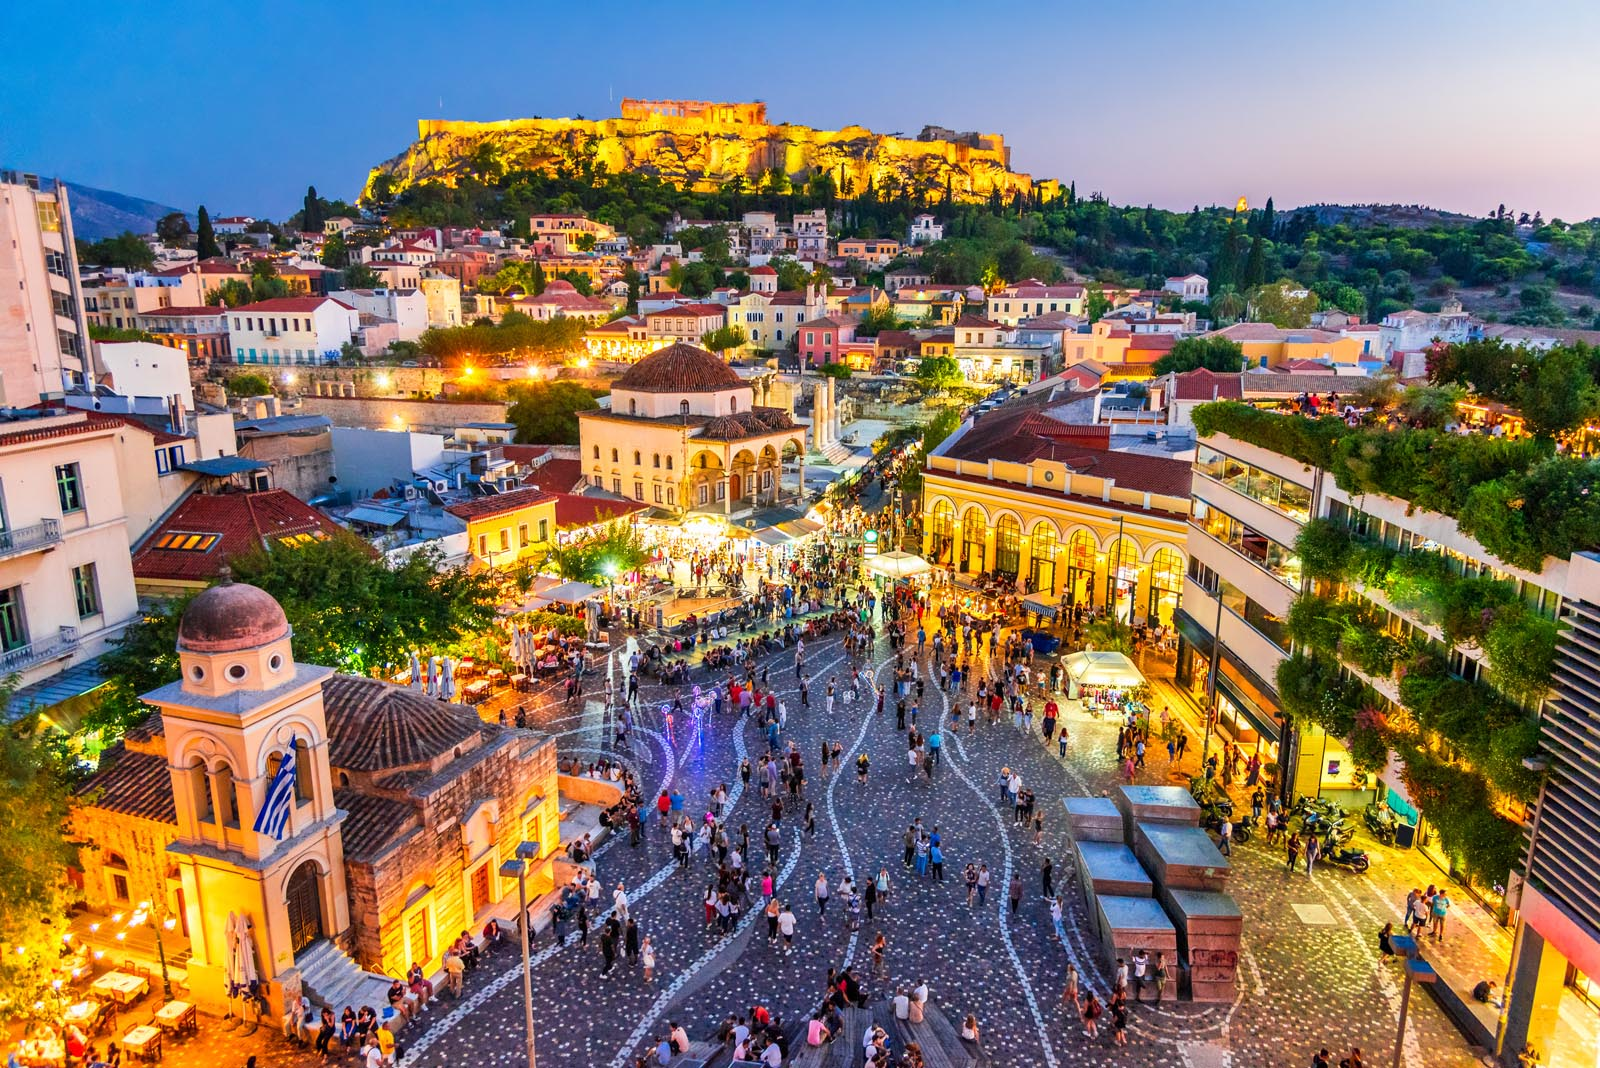 Enlarged - Monastiraki in Athens Greece